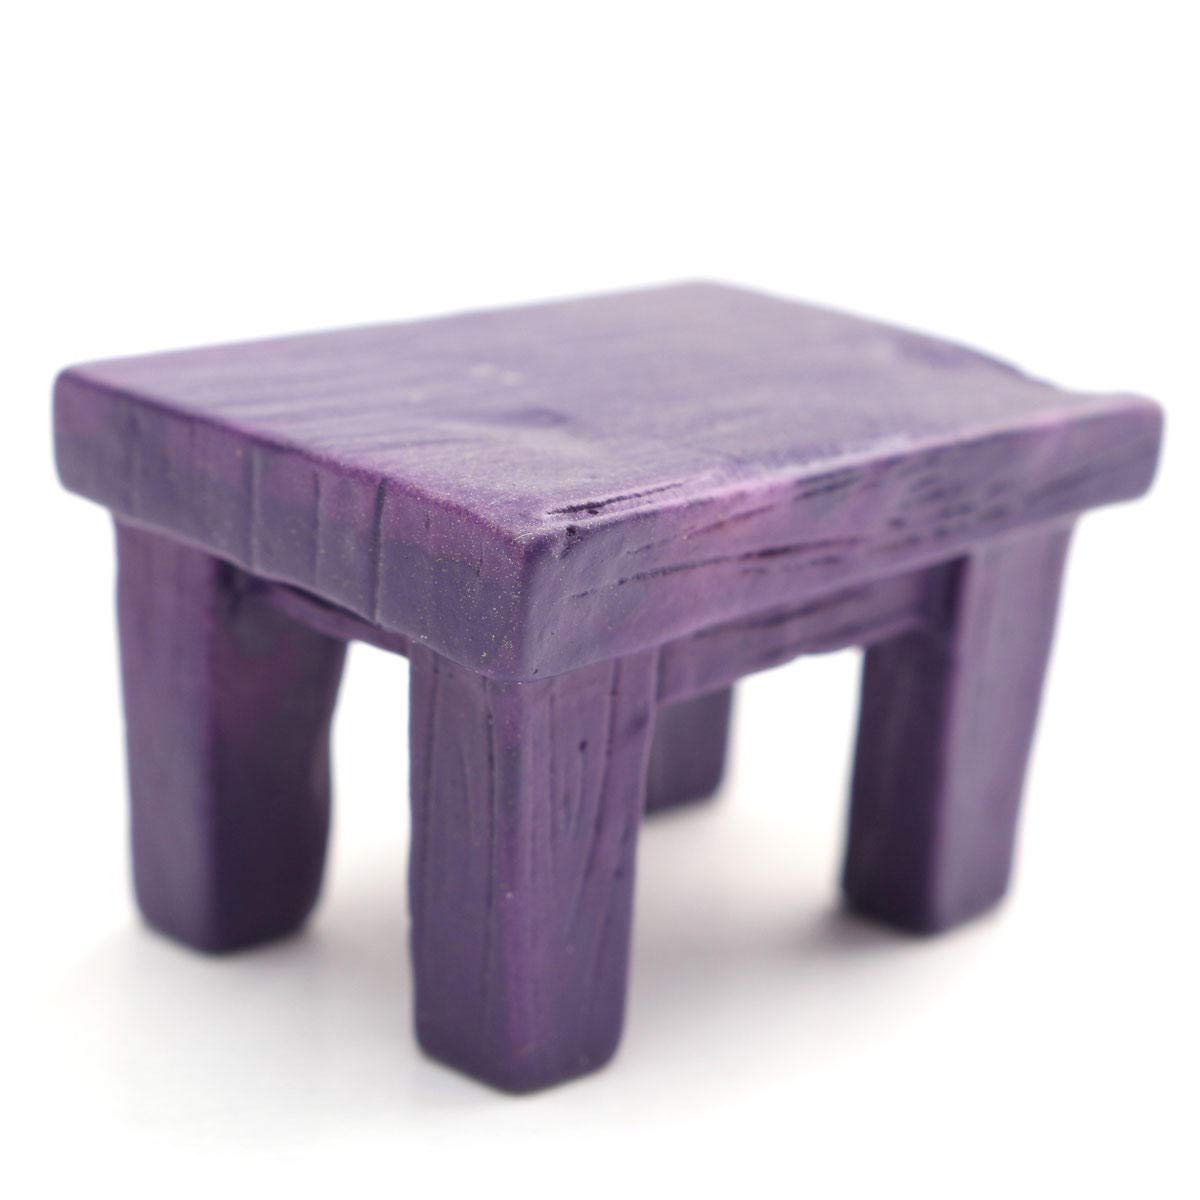 Mini Resin Stool Chair Desk Figurine Micro Landscape Ornament Gardening Decoration DIY Bonsai Craft - Purple Desk